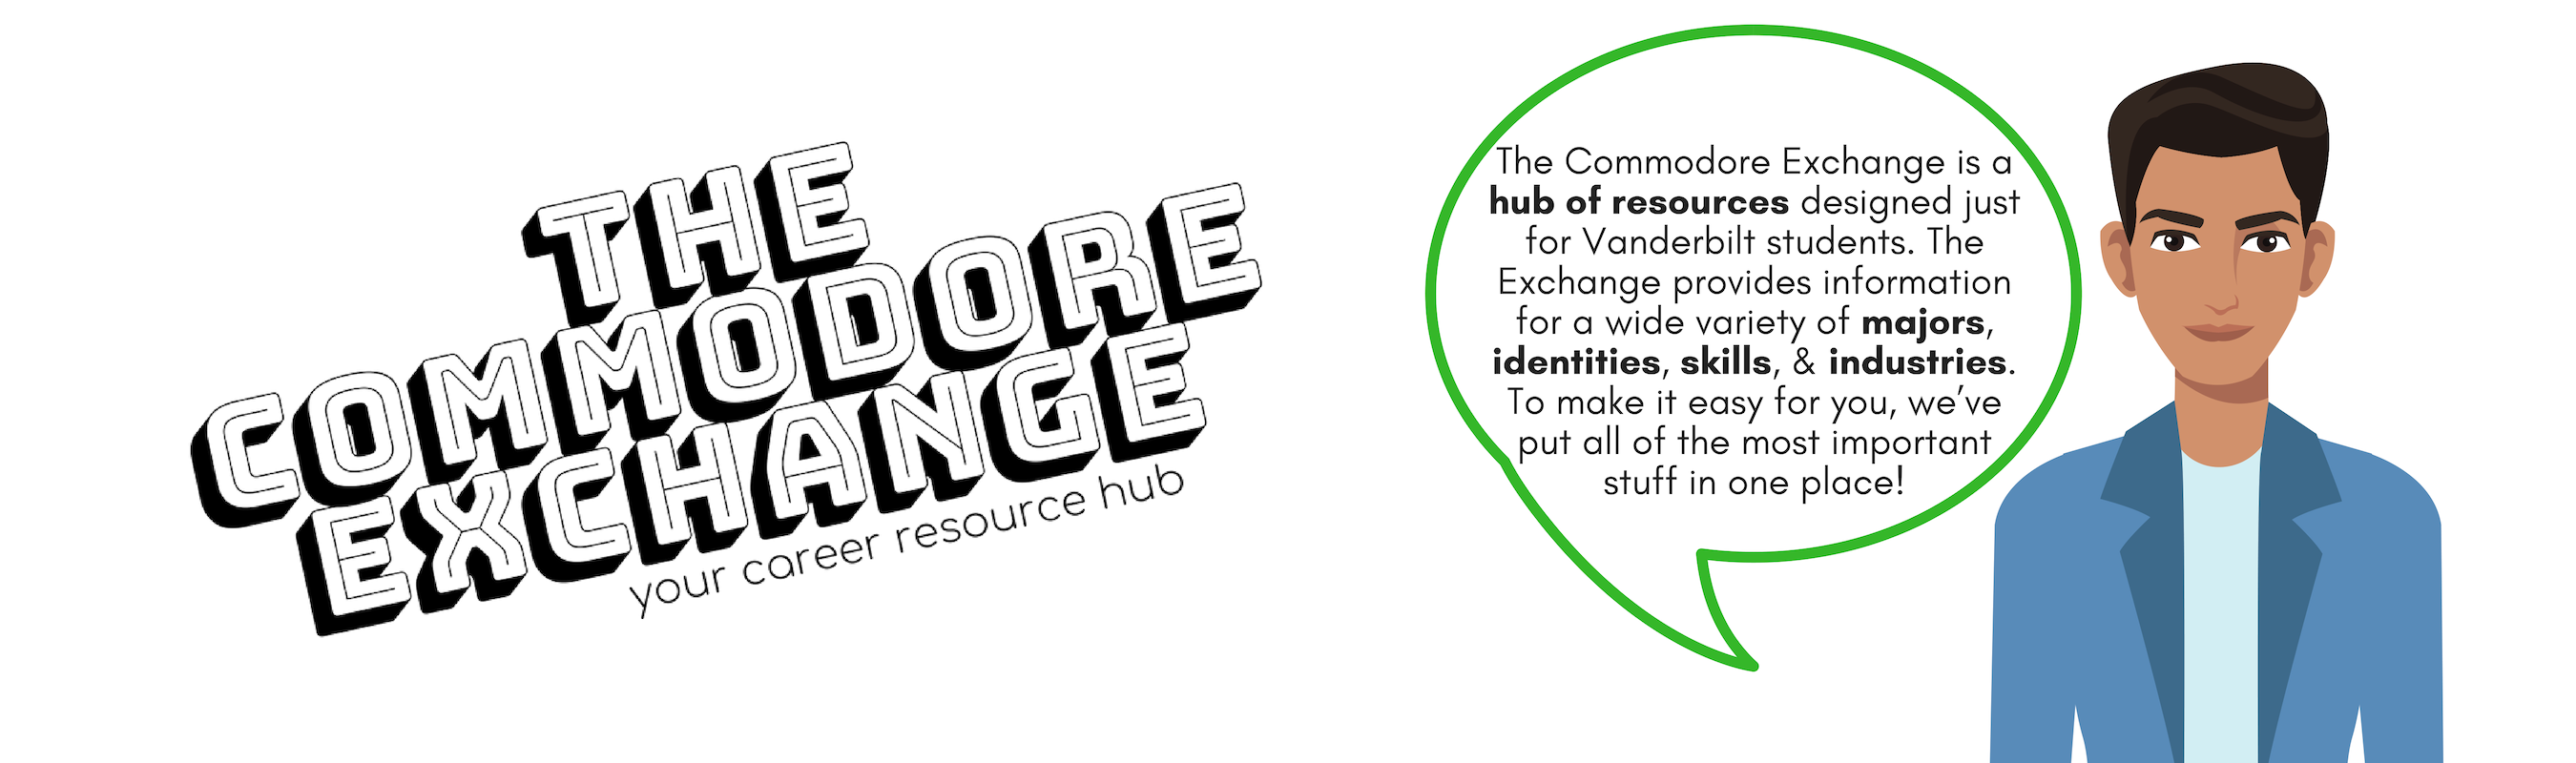 The Commodore Exchange. Your career resource hub.